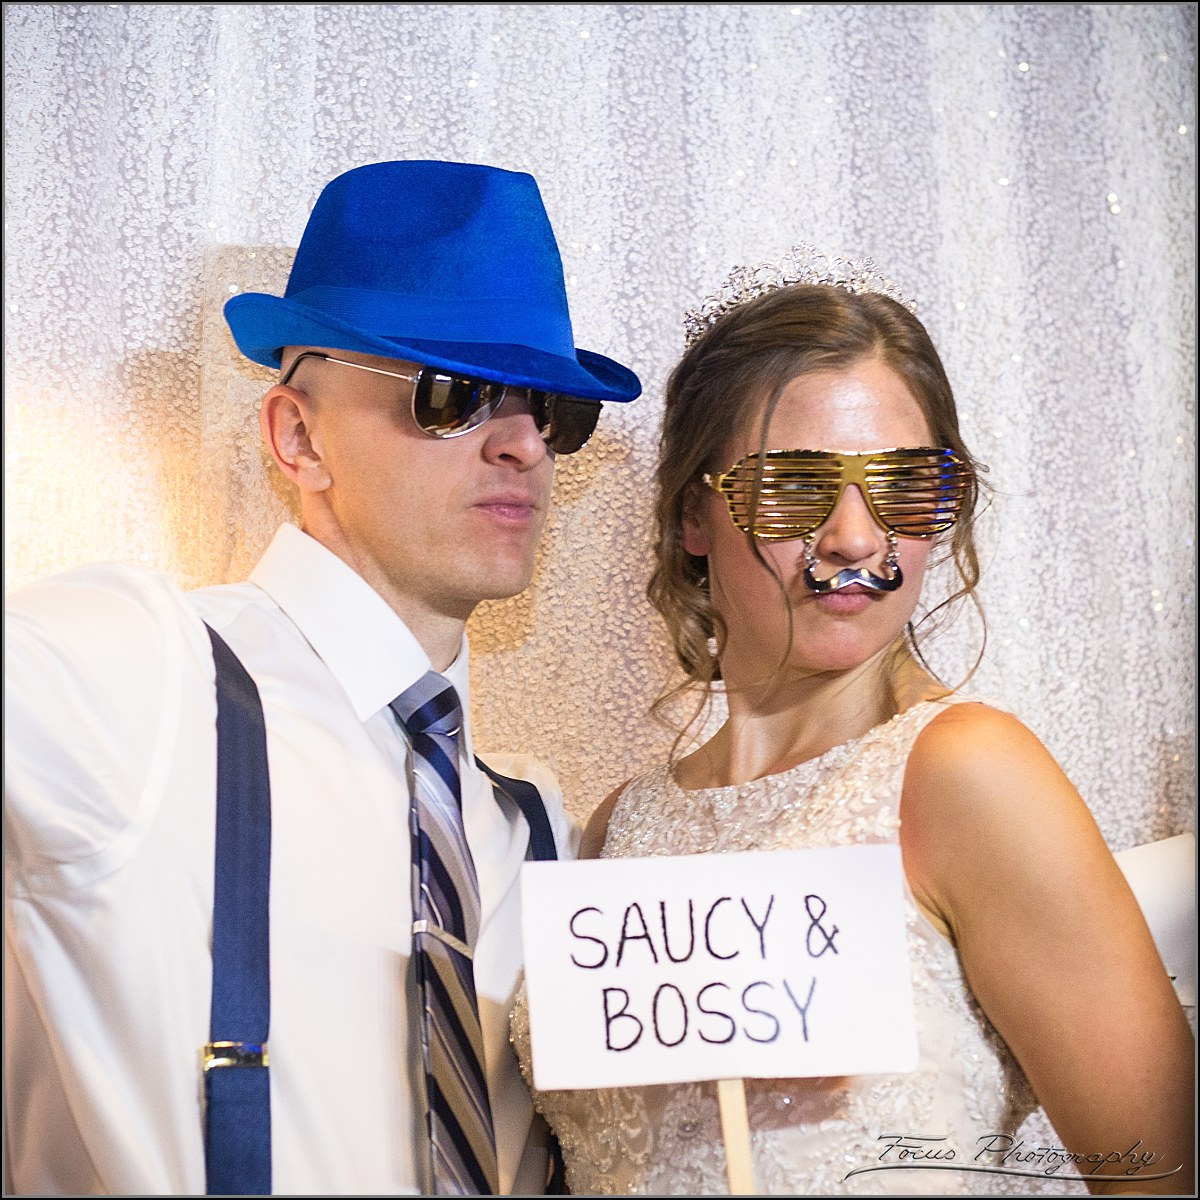 Saucy and bossy in photo booth